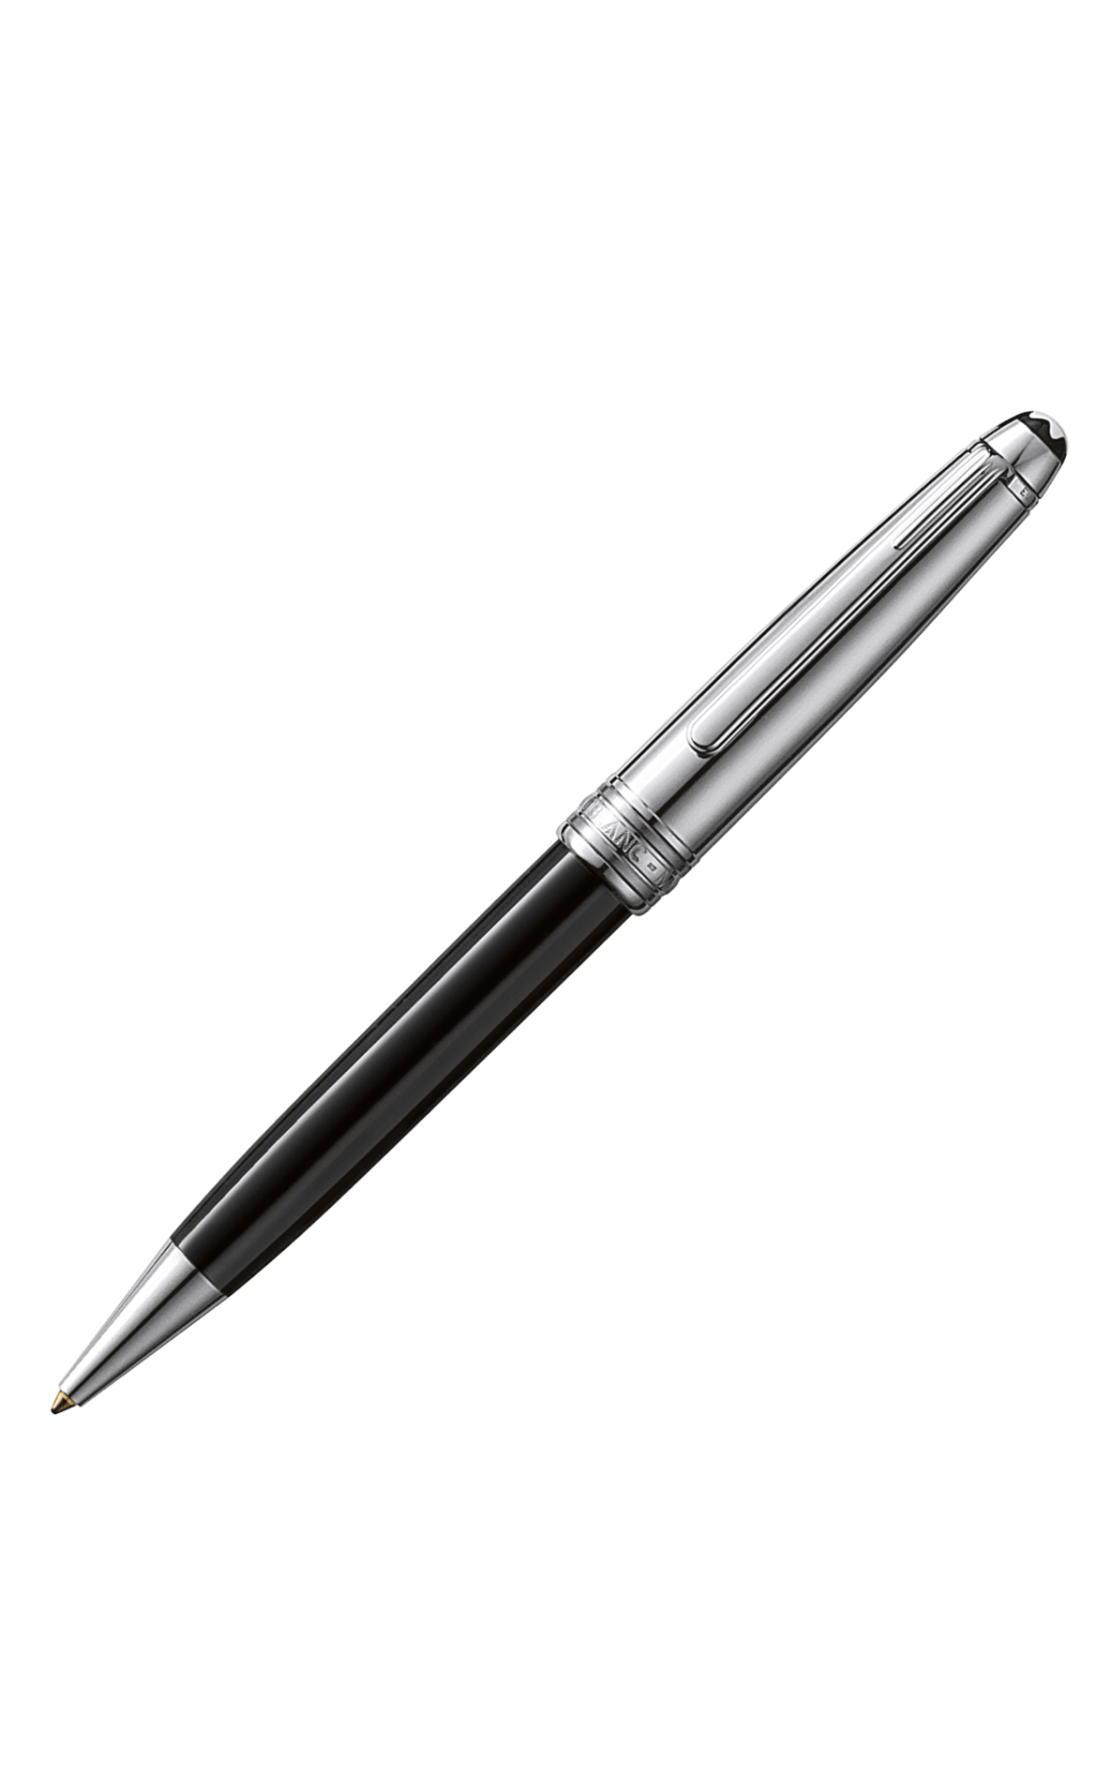 Montblanc Meisterstuck 5020 product image